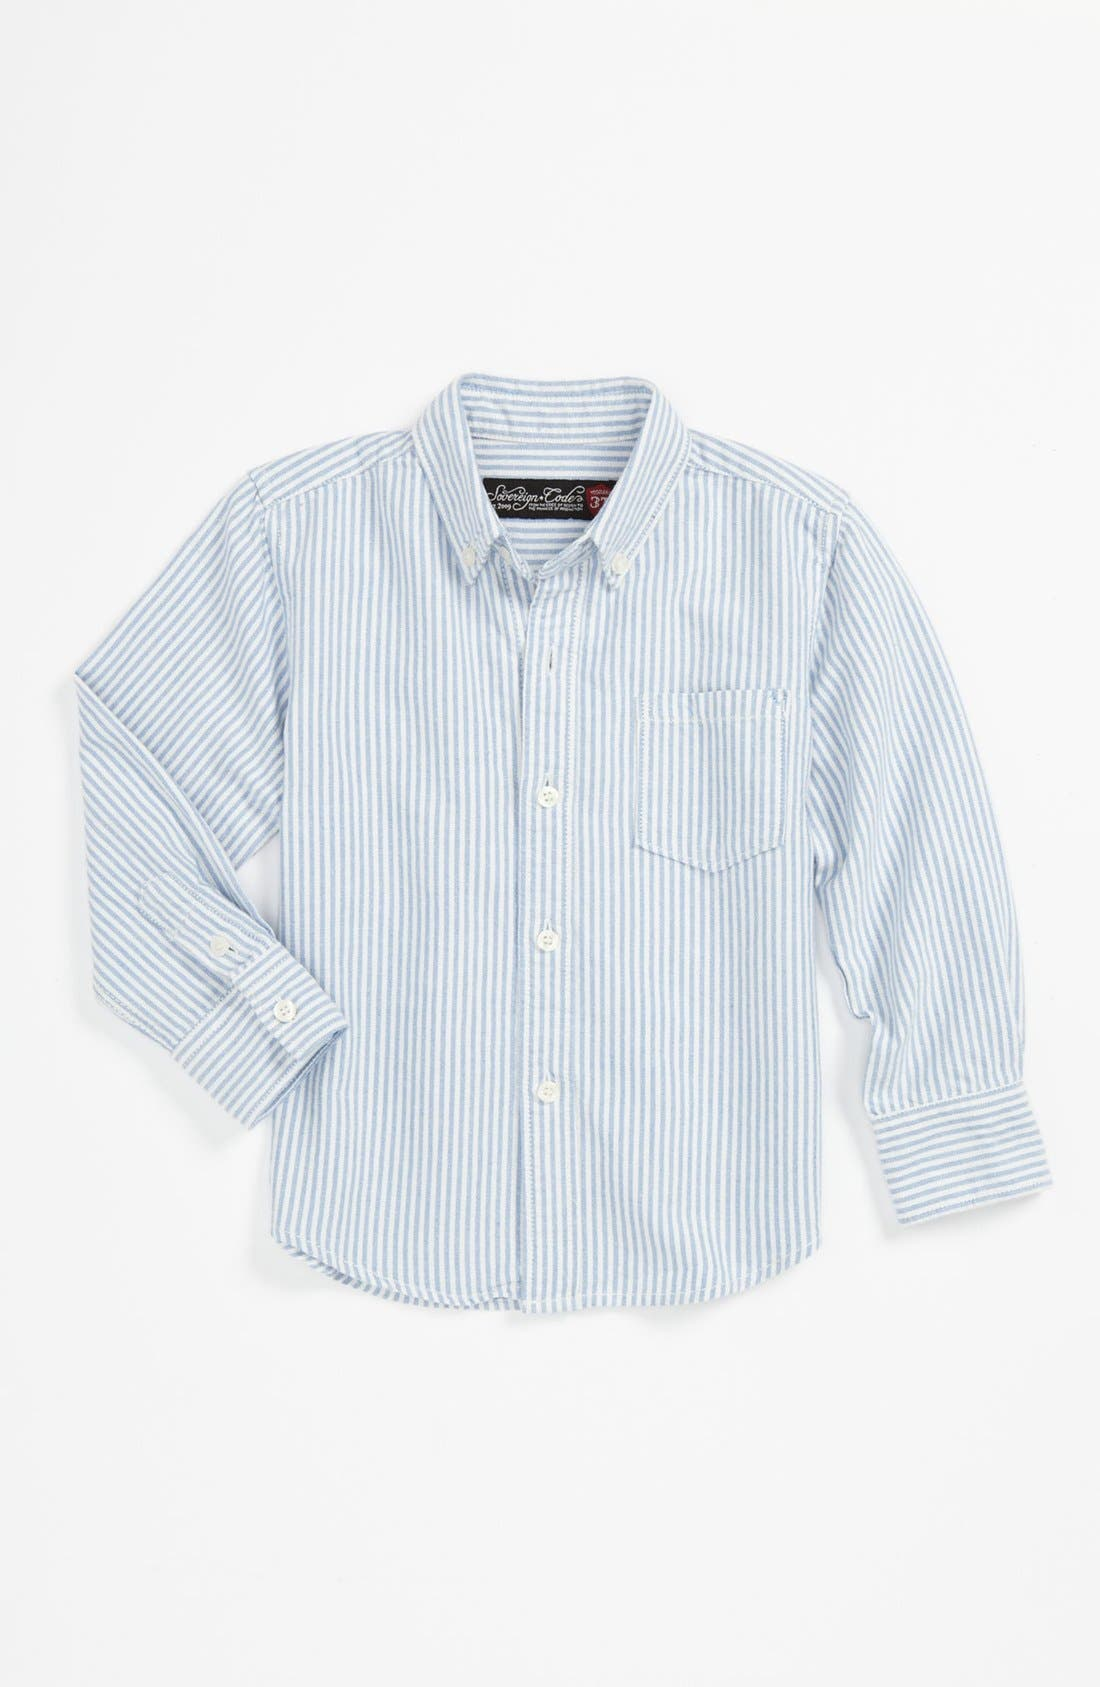 Alternate Image 1 Selected - Sovereign Code Oxford Cloth Woven Shirt (Toddler)